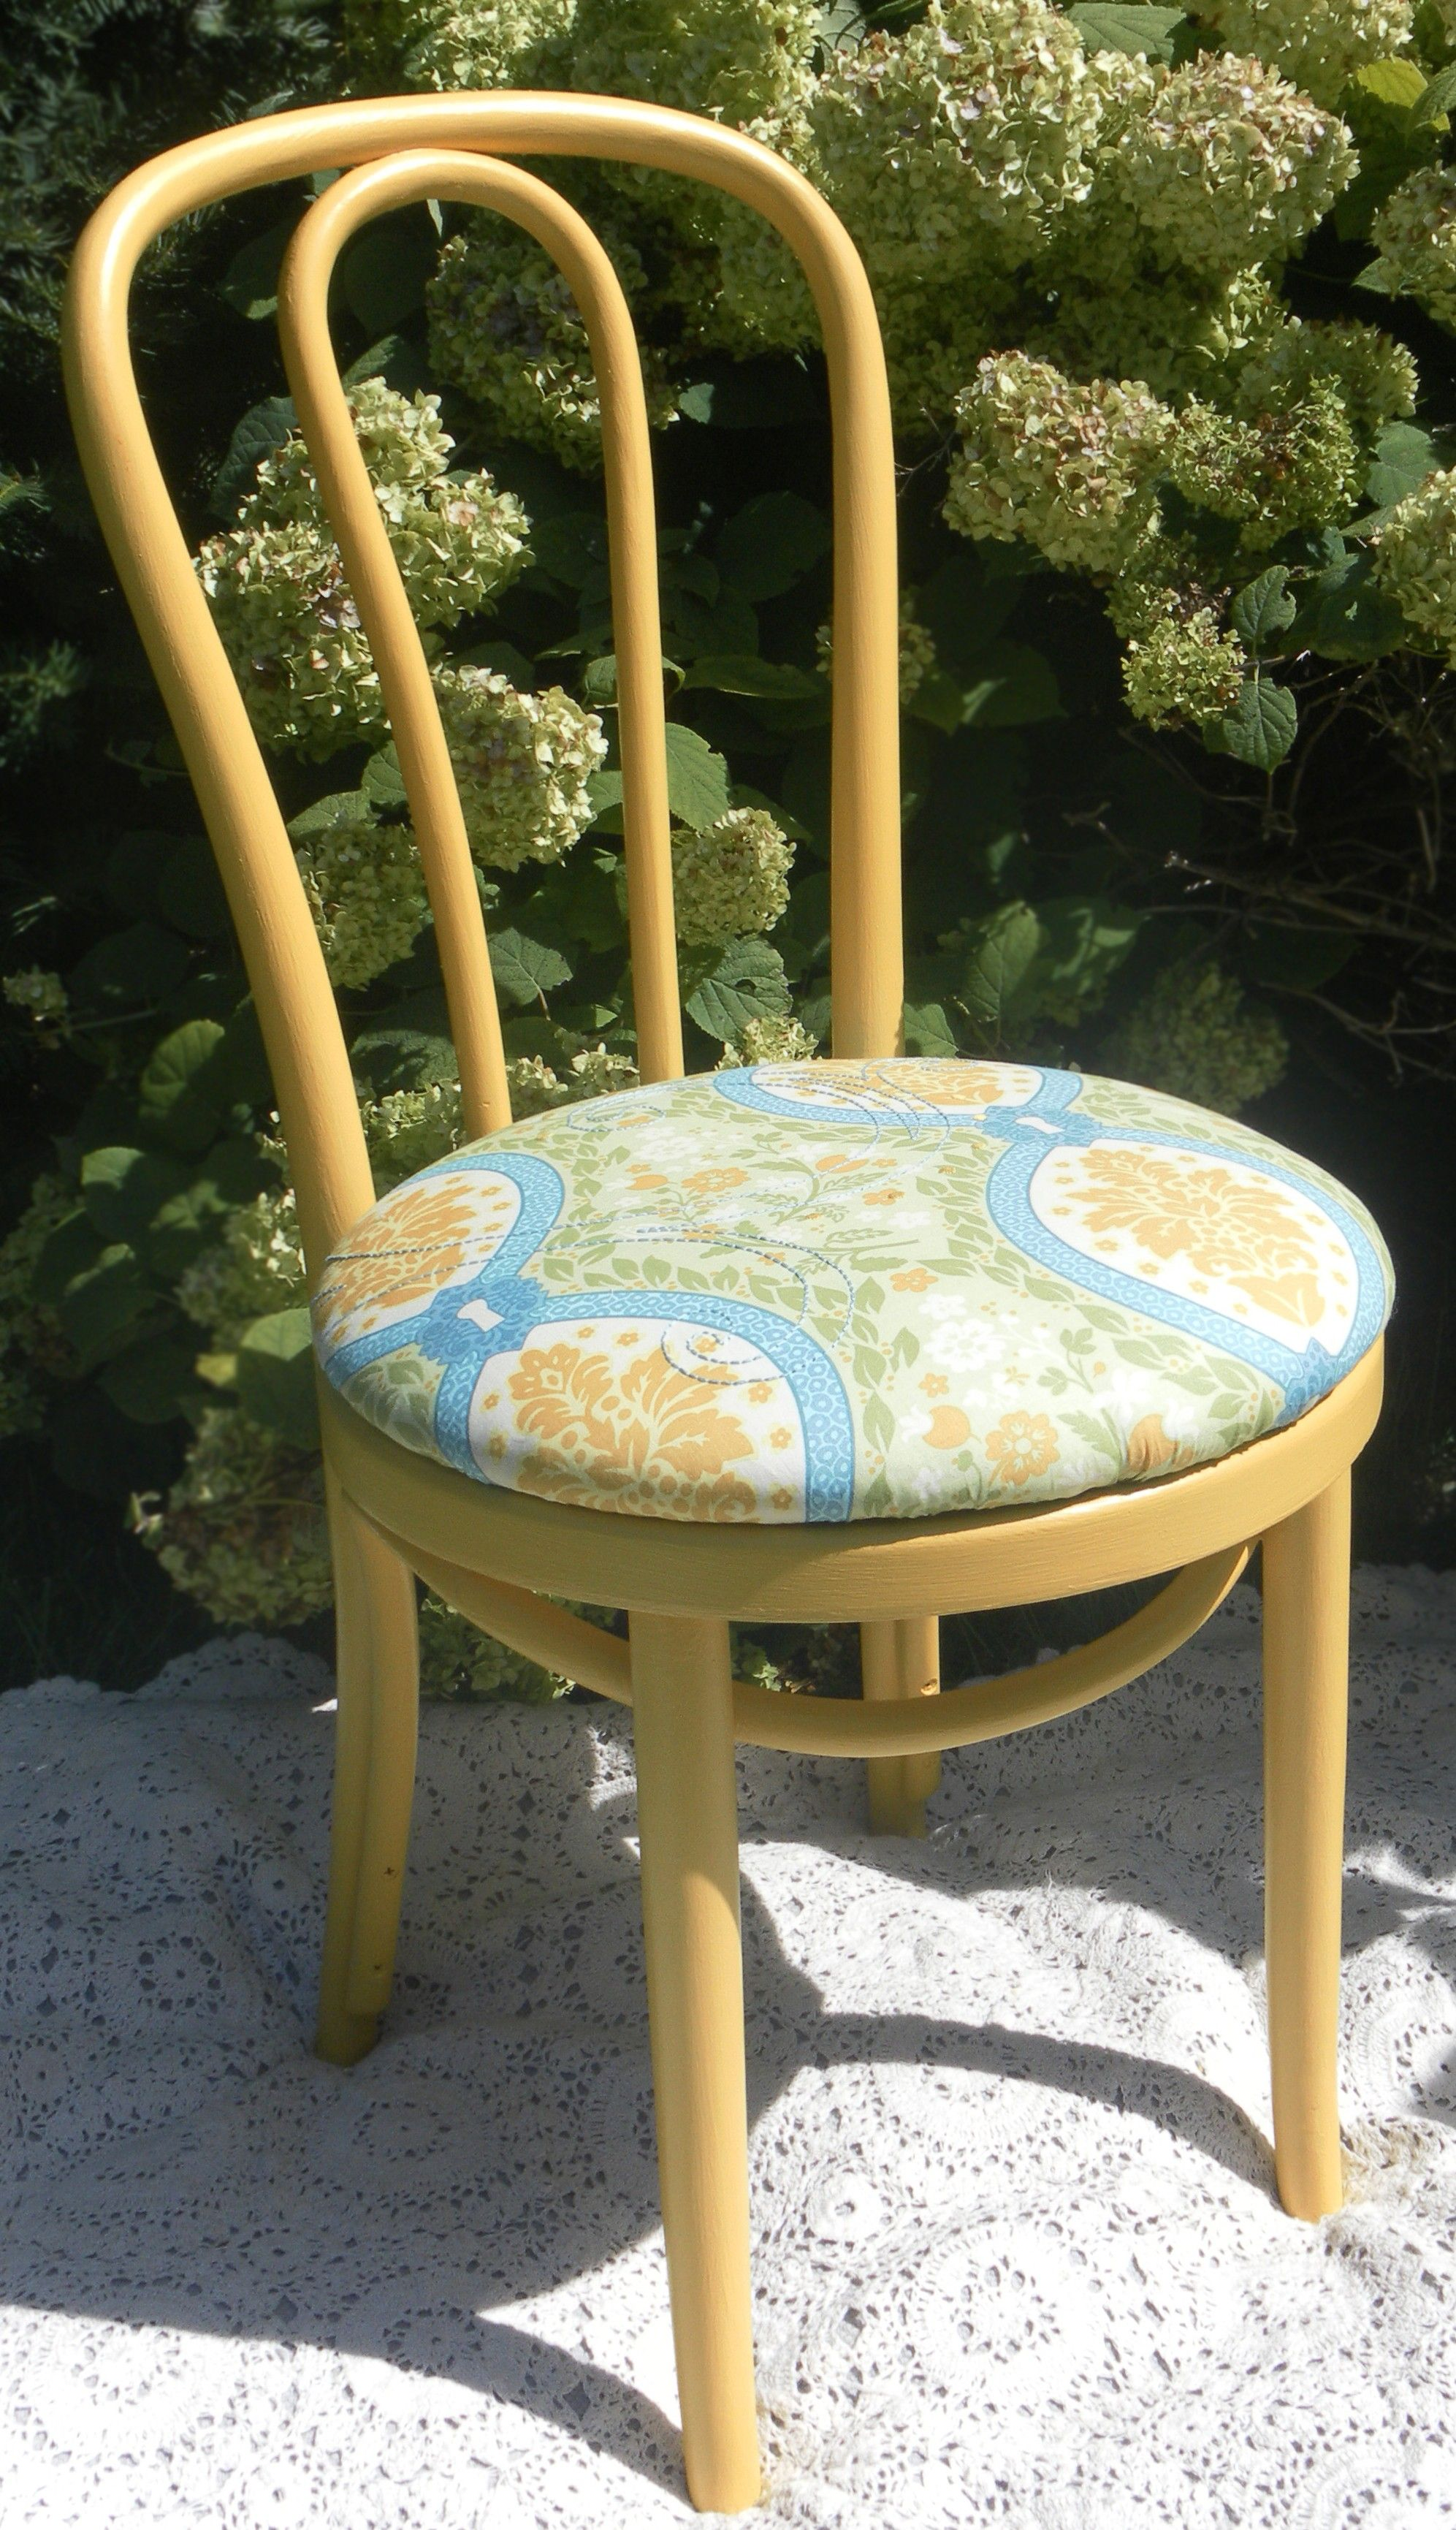 ... Bent Cane Bistro Chairs $60   Shorewood  Http://furnishly.com/catalog/product/view/id/1435/s/yellow Bent Cane Bistro  Chairs With Hand Embroidery Detail/